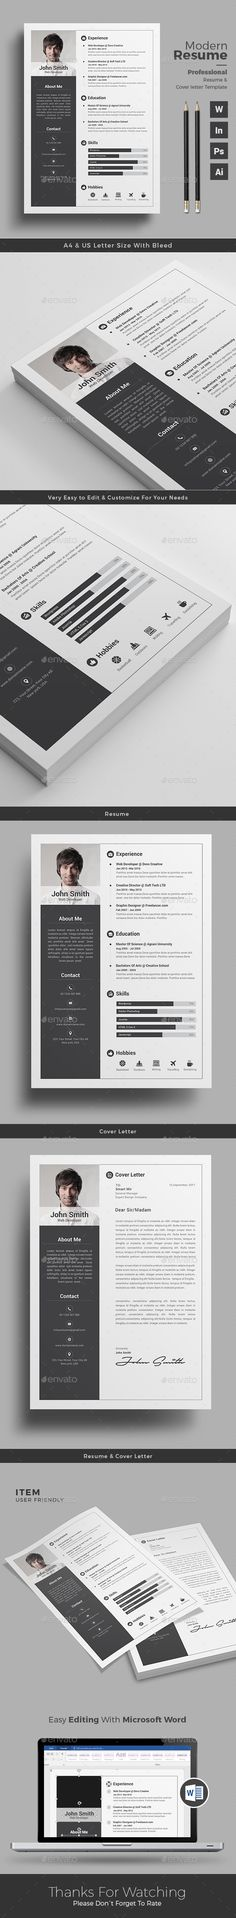 Resume Ai illustrator, Illustrators and Cv template - microsoft word template resume